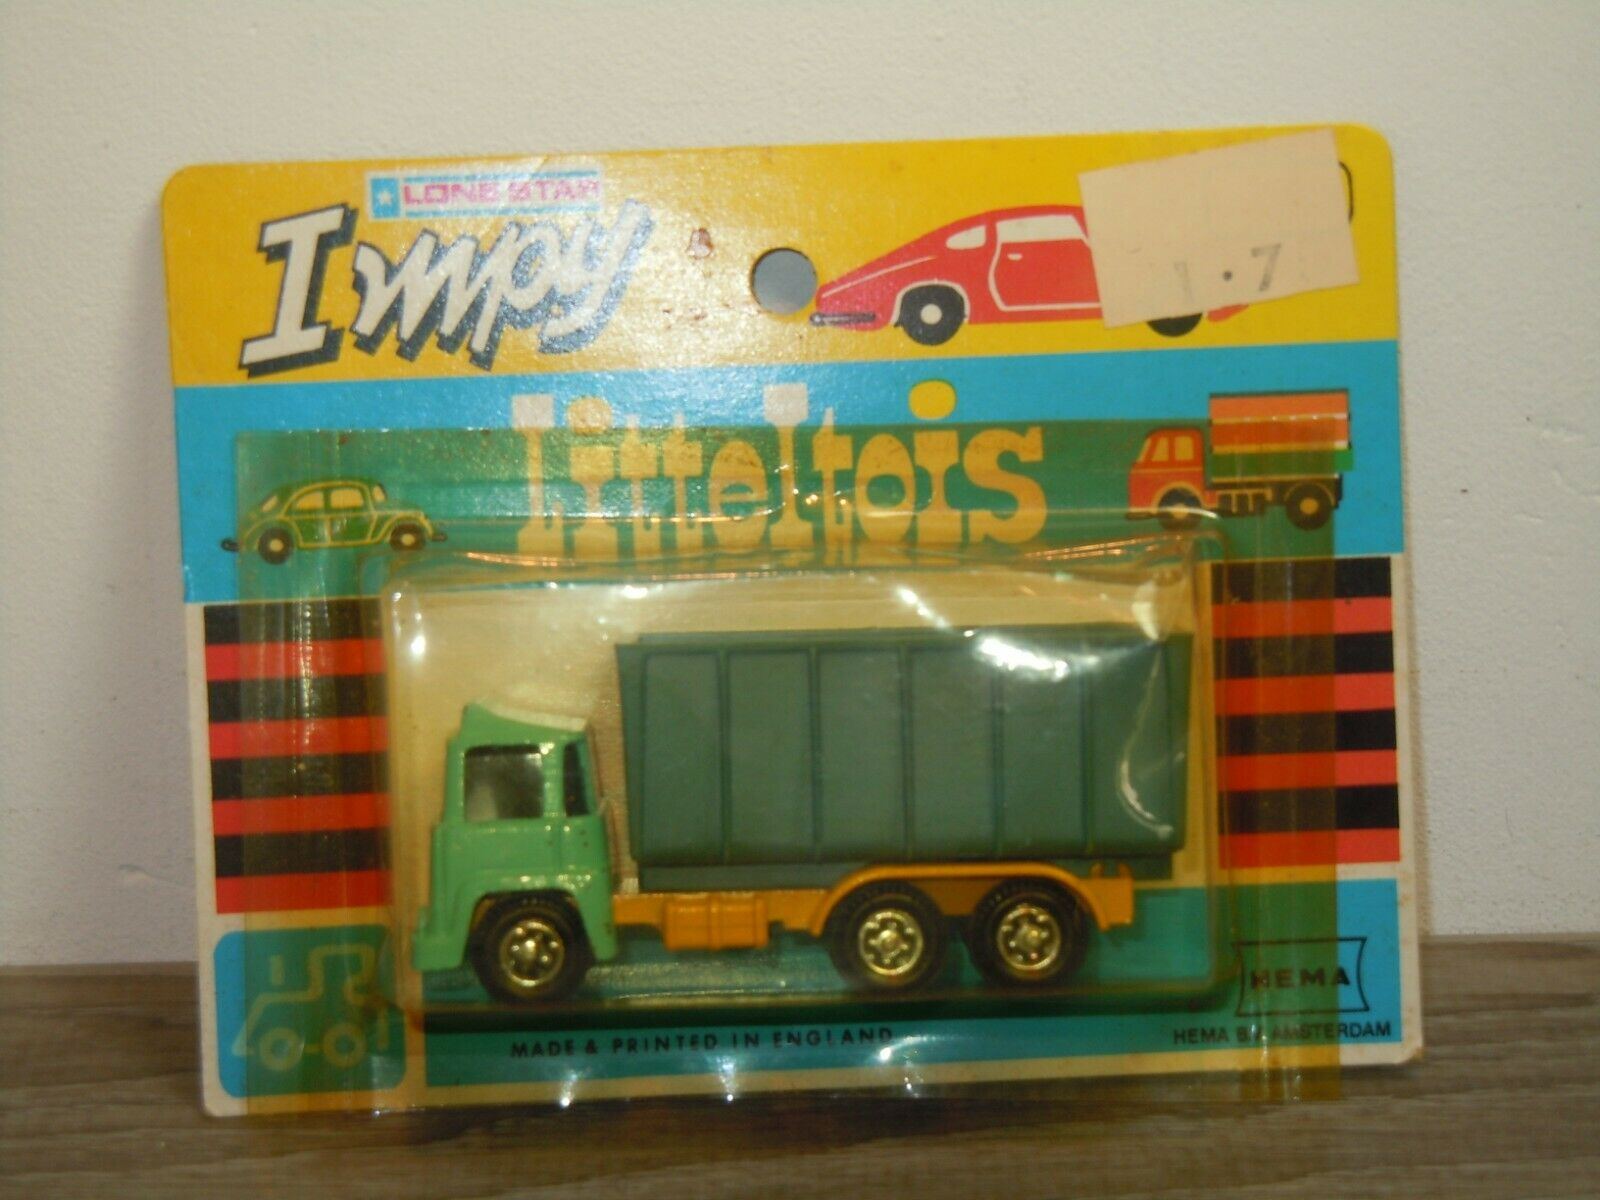 Truck - Lone Star Impy made for HEMA Netherlands in Box 37228